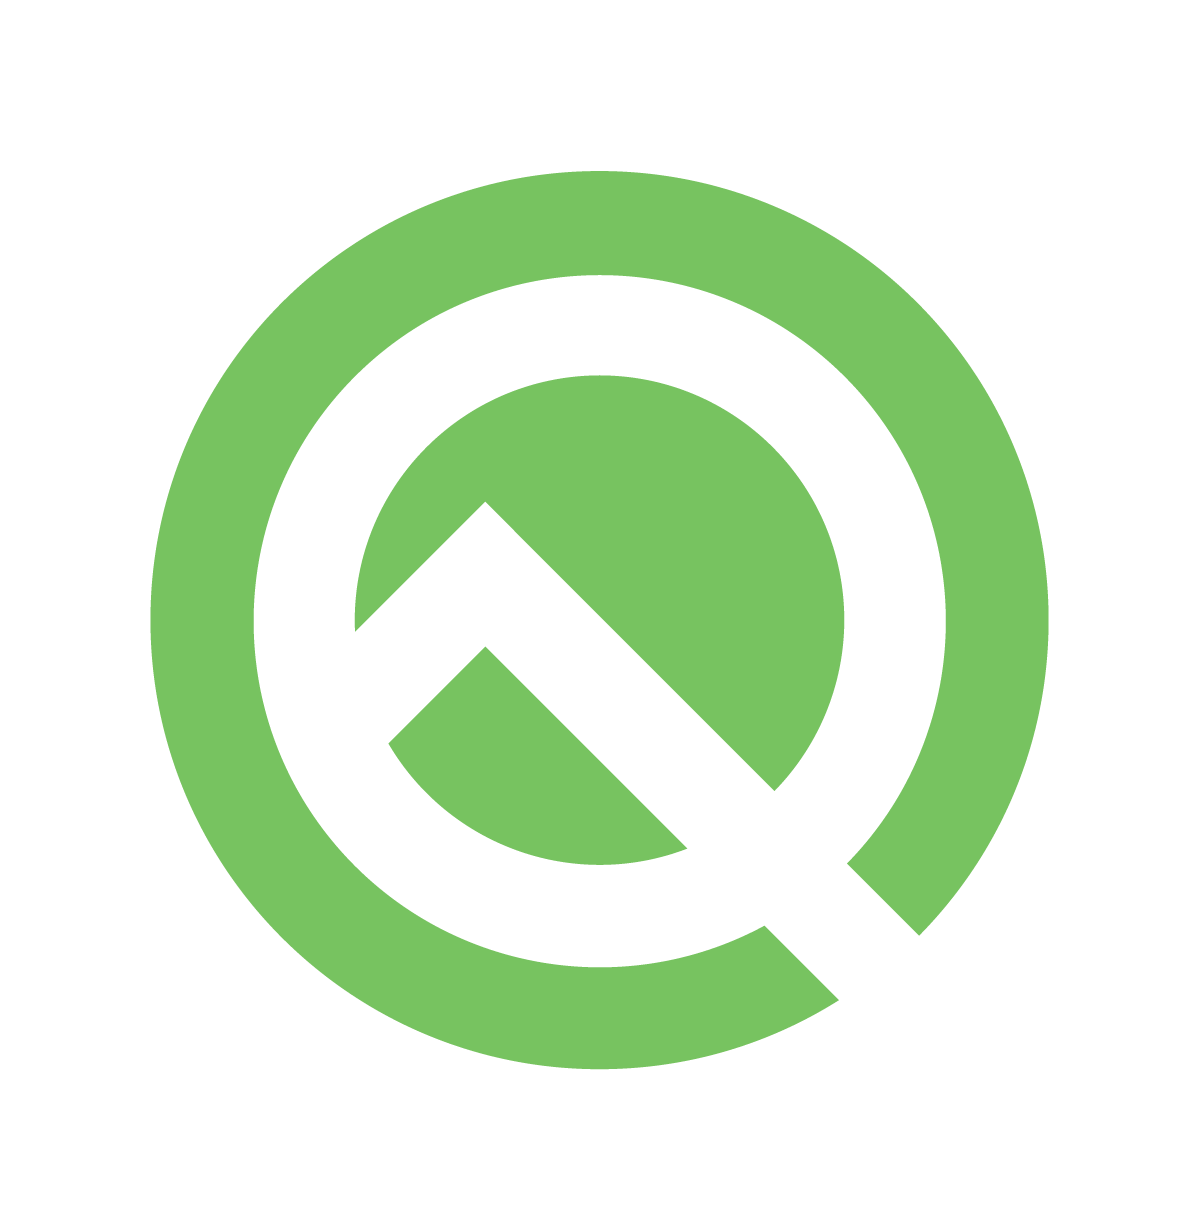 Google releases much awaited Android Q Beta for Pixel devices